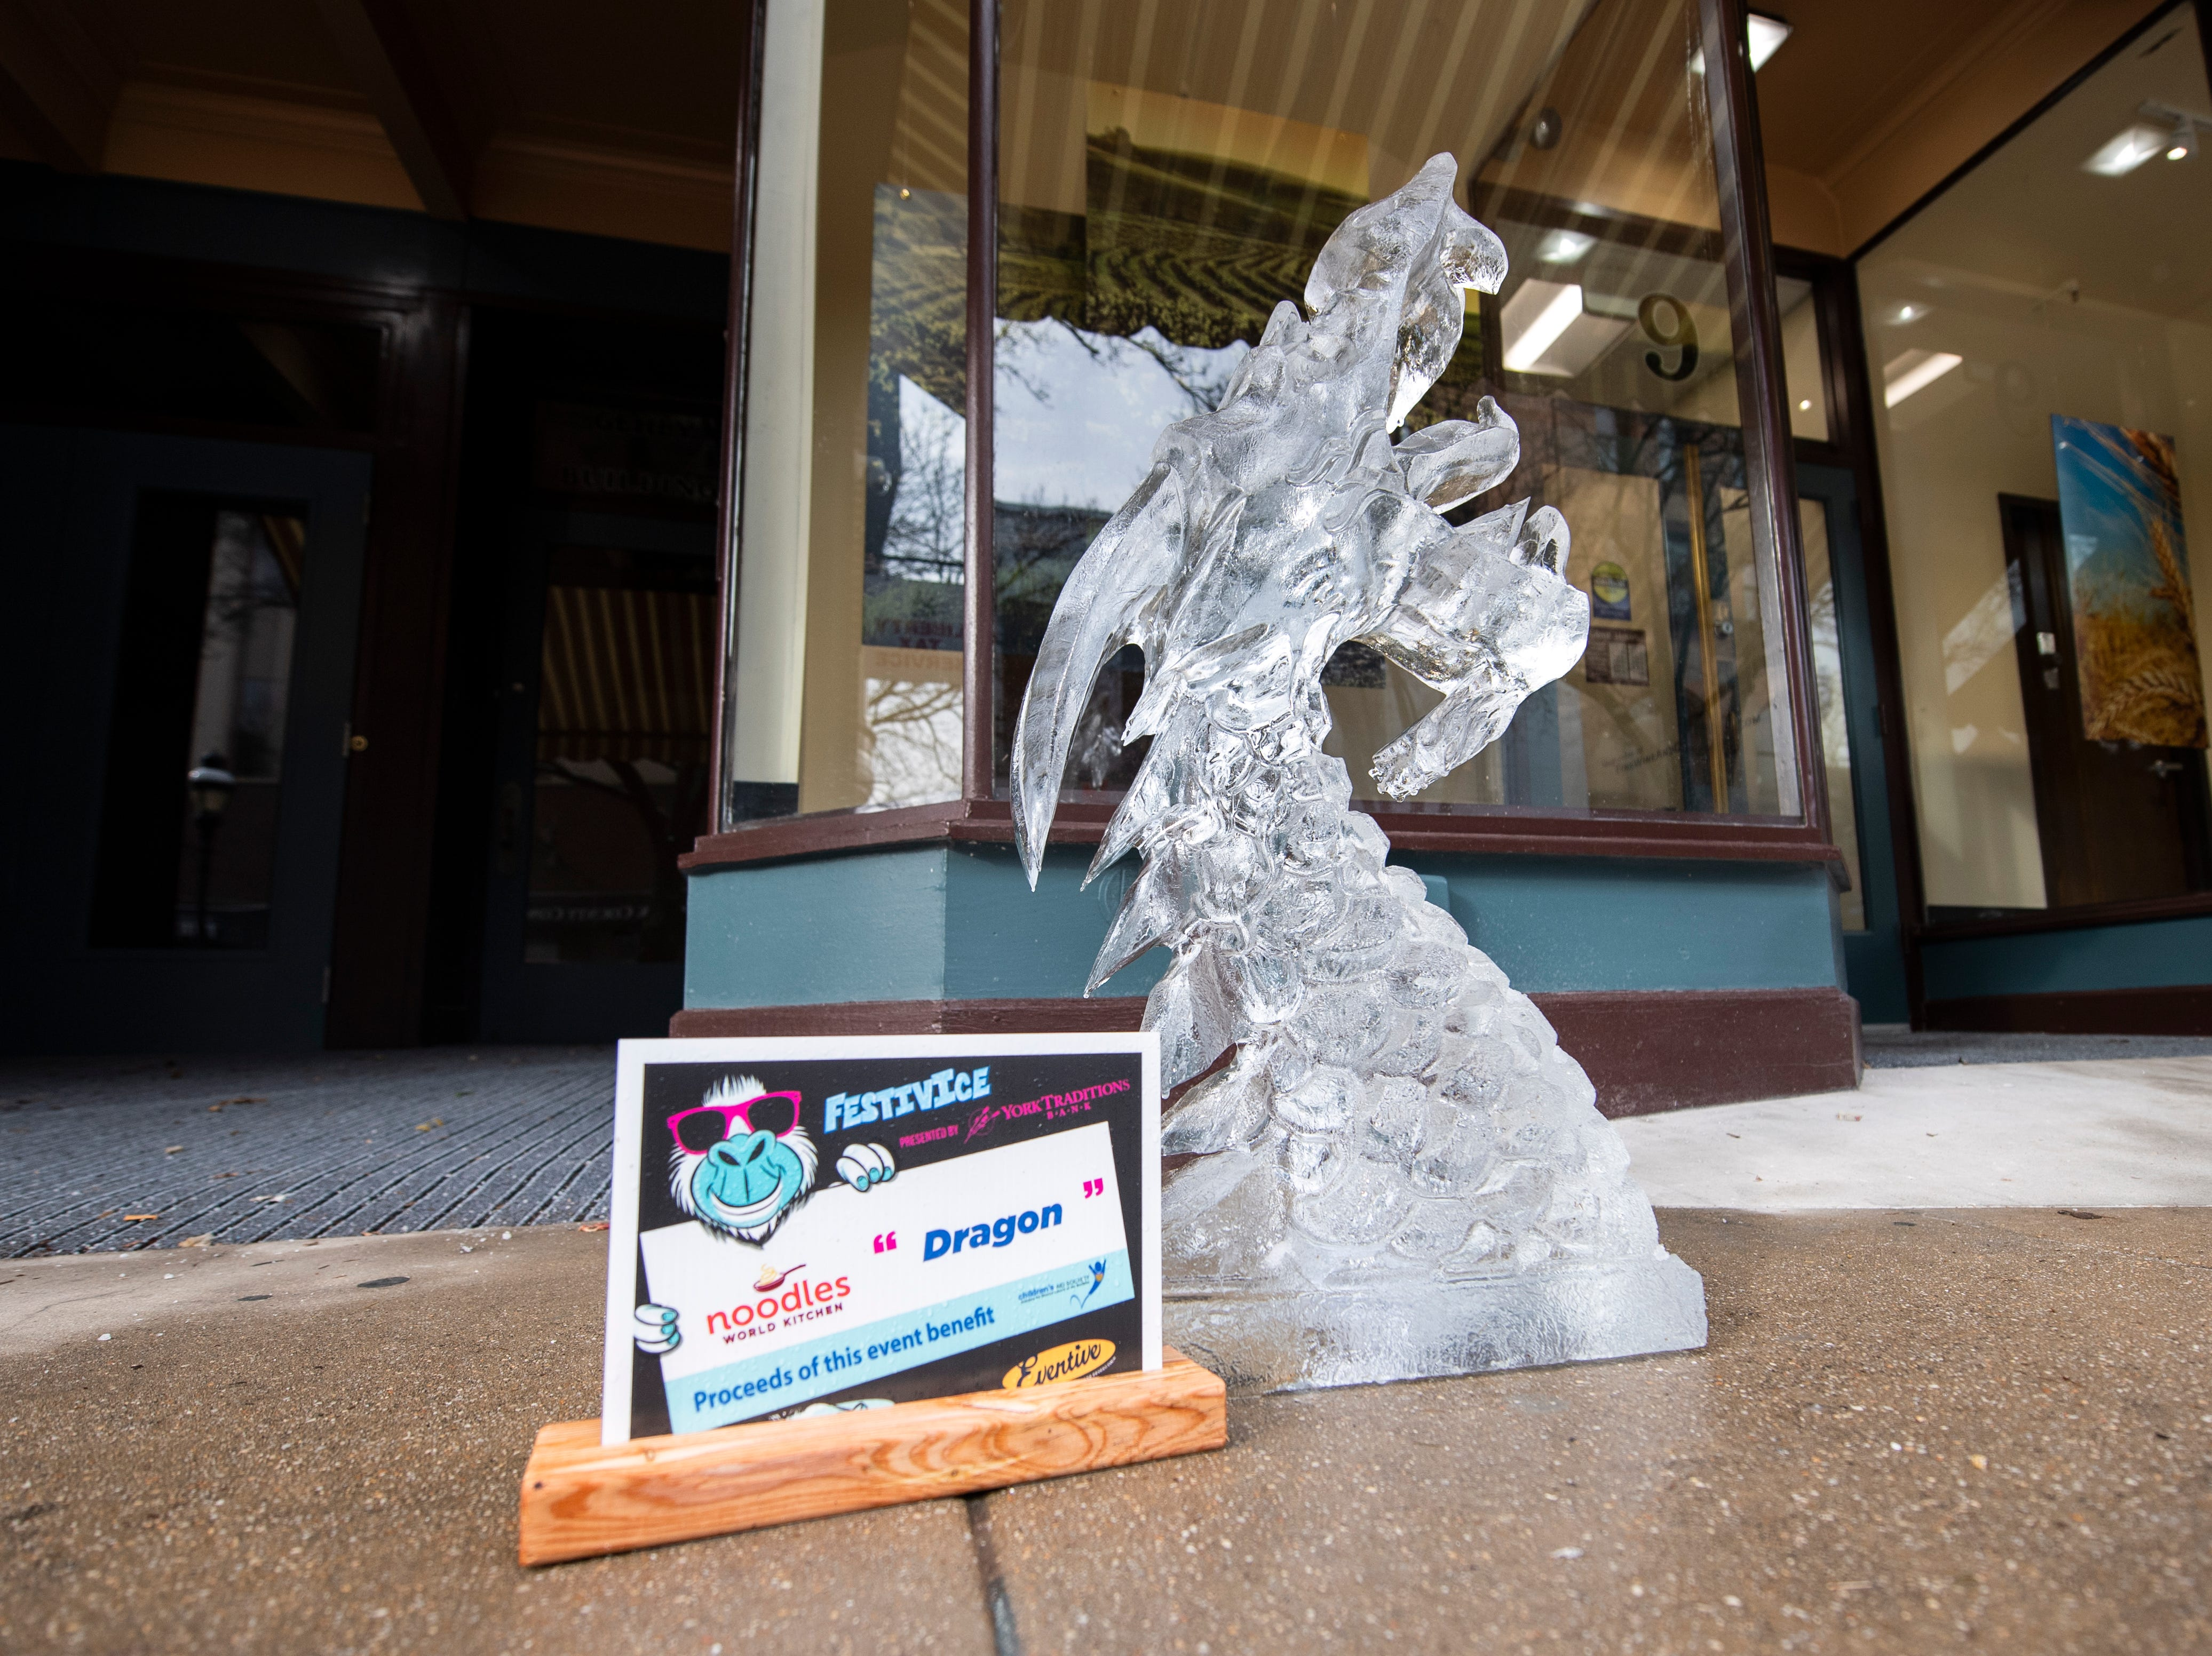 'Dragon' is one of many ice sculptures downtown, Friday, Jan. 18, 2019. The FestivICE ice festival has interactive ice sculptures, an ice slide and more. The three-day event ends Saturday.